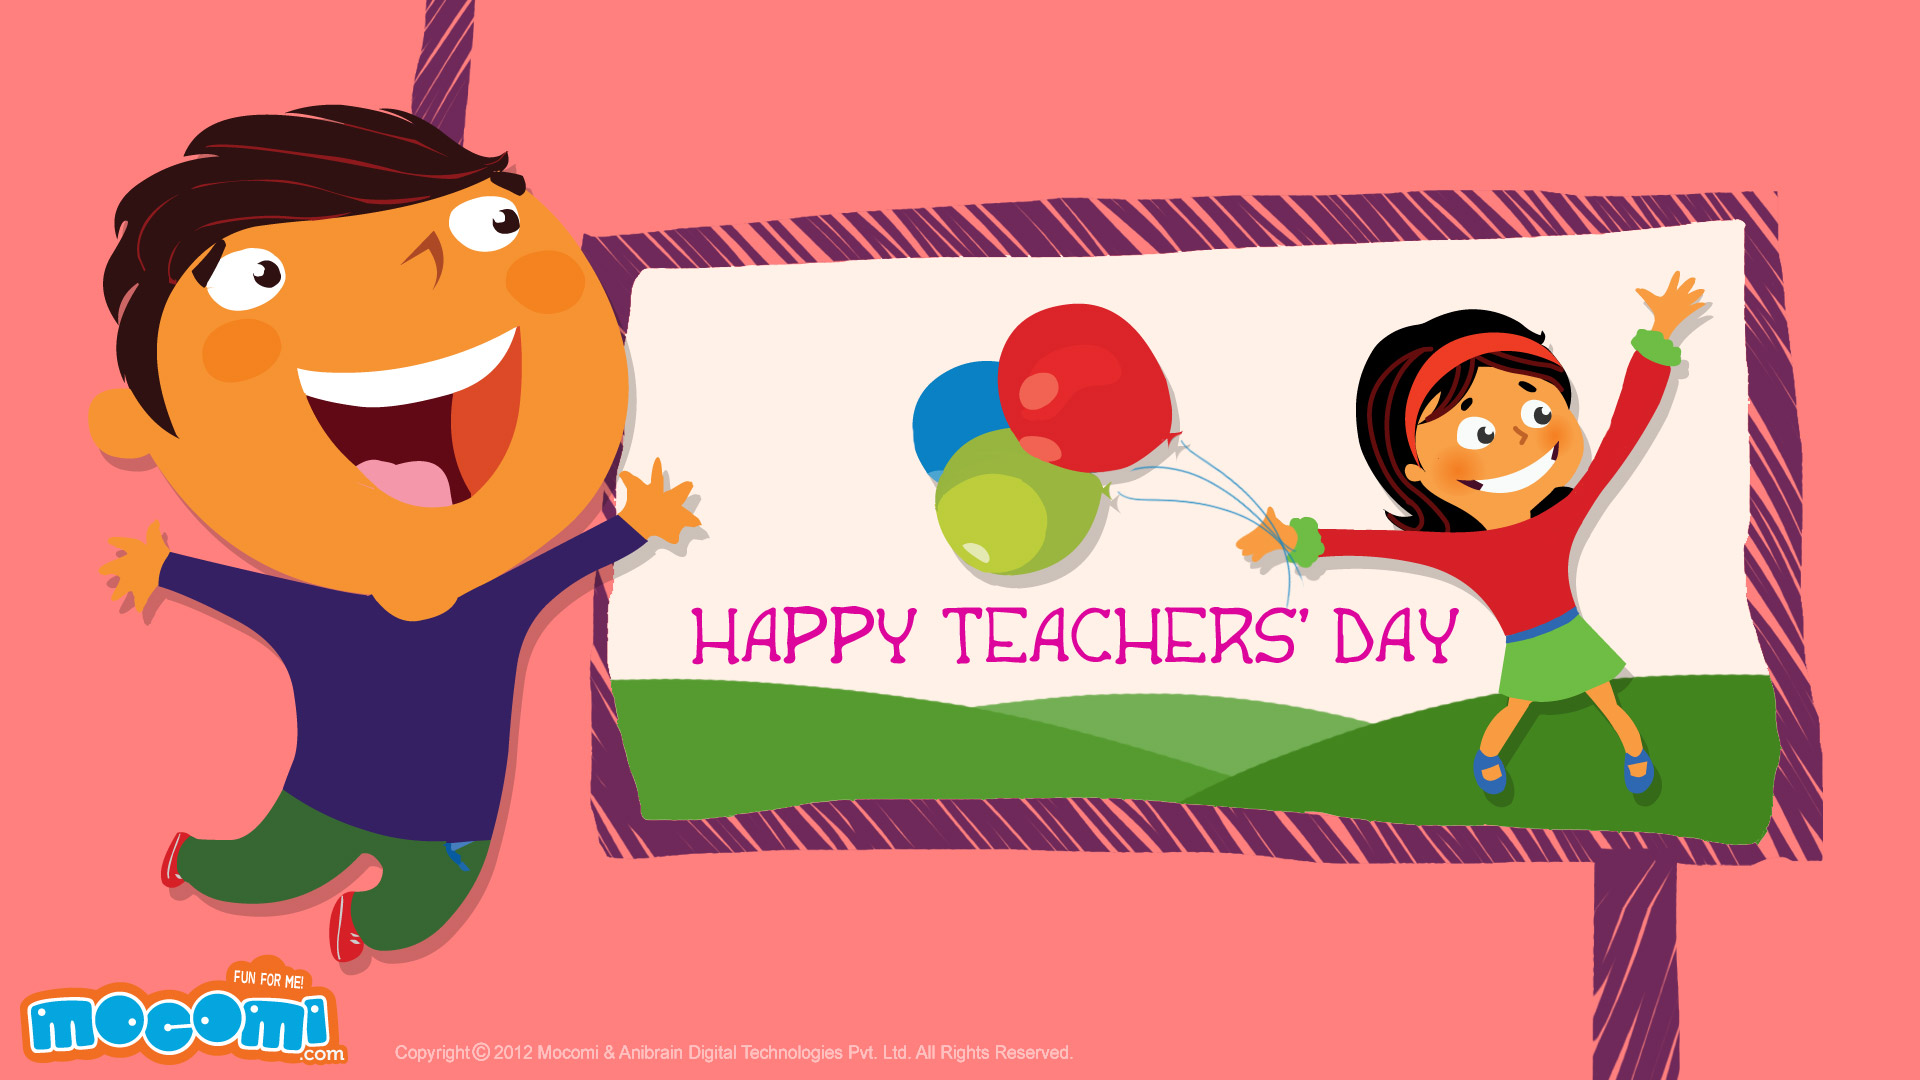 Happy teachers daymocomi fun things to learn do everyday http www mocomi com entertainment happy teachers day wallpaper 03